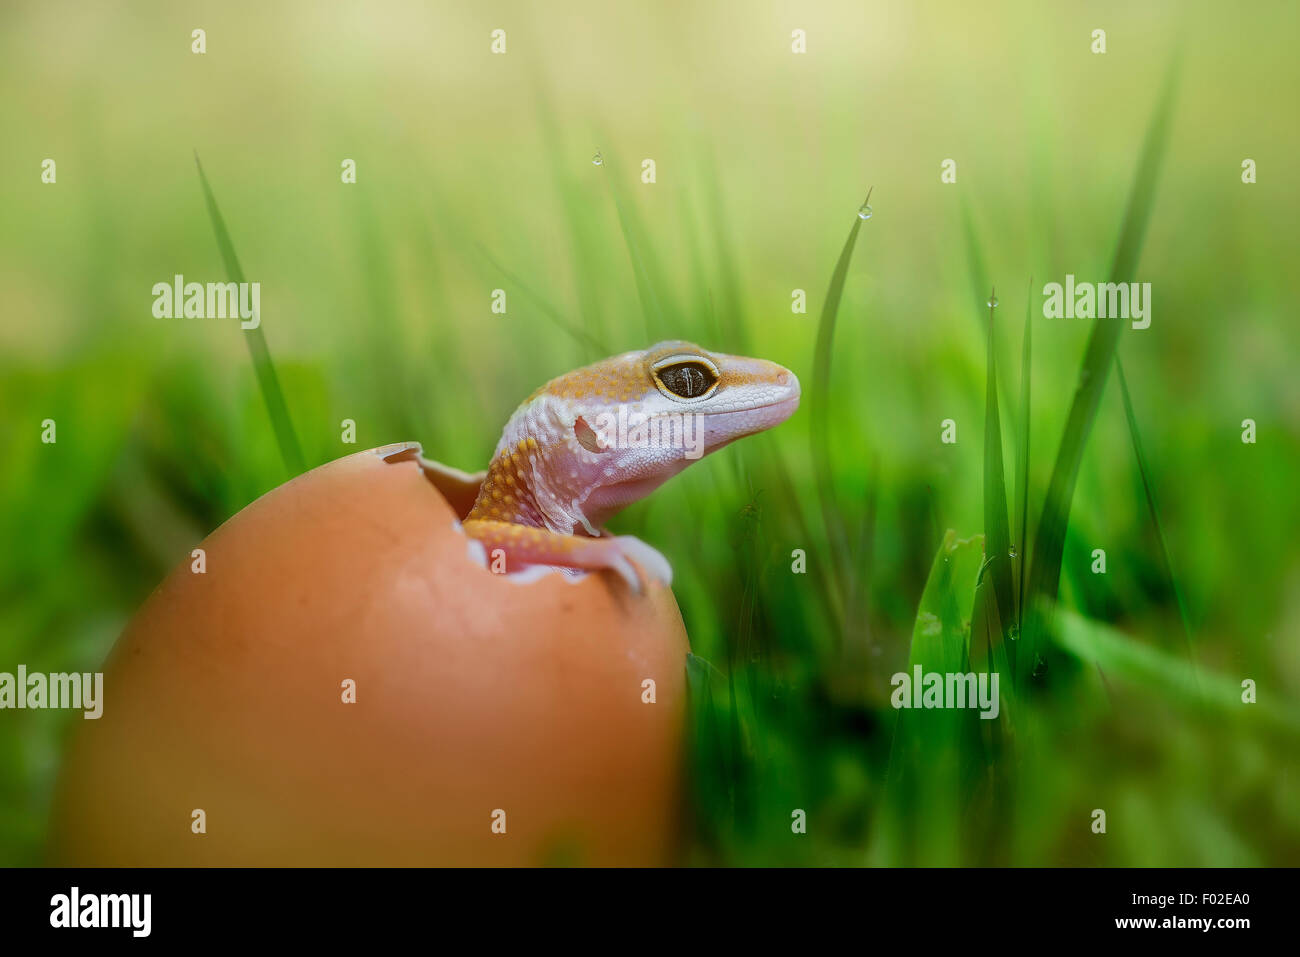 Baby lizard hatching from egg - Stock Image